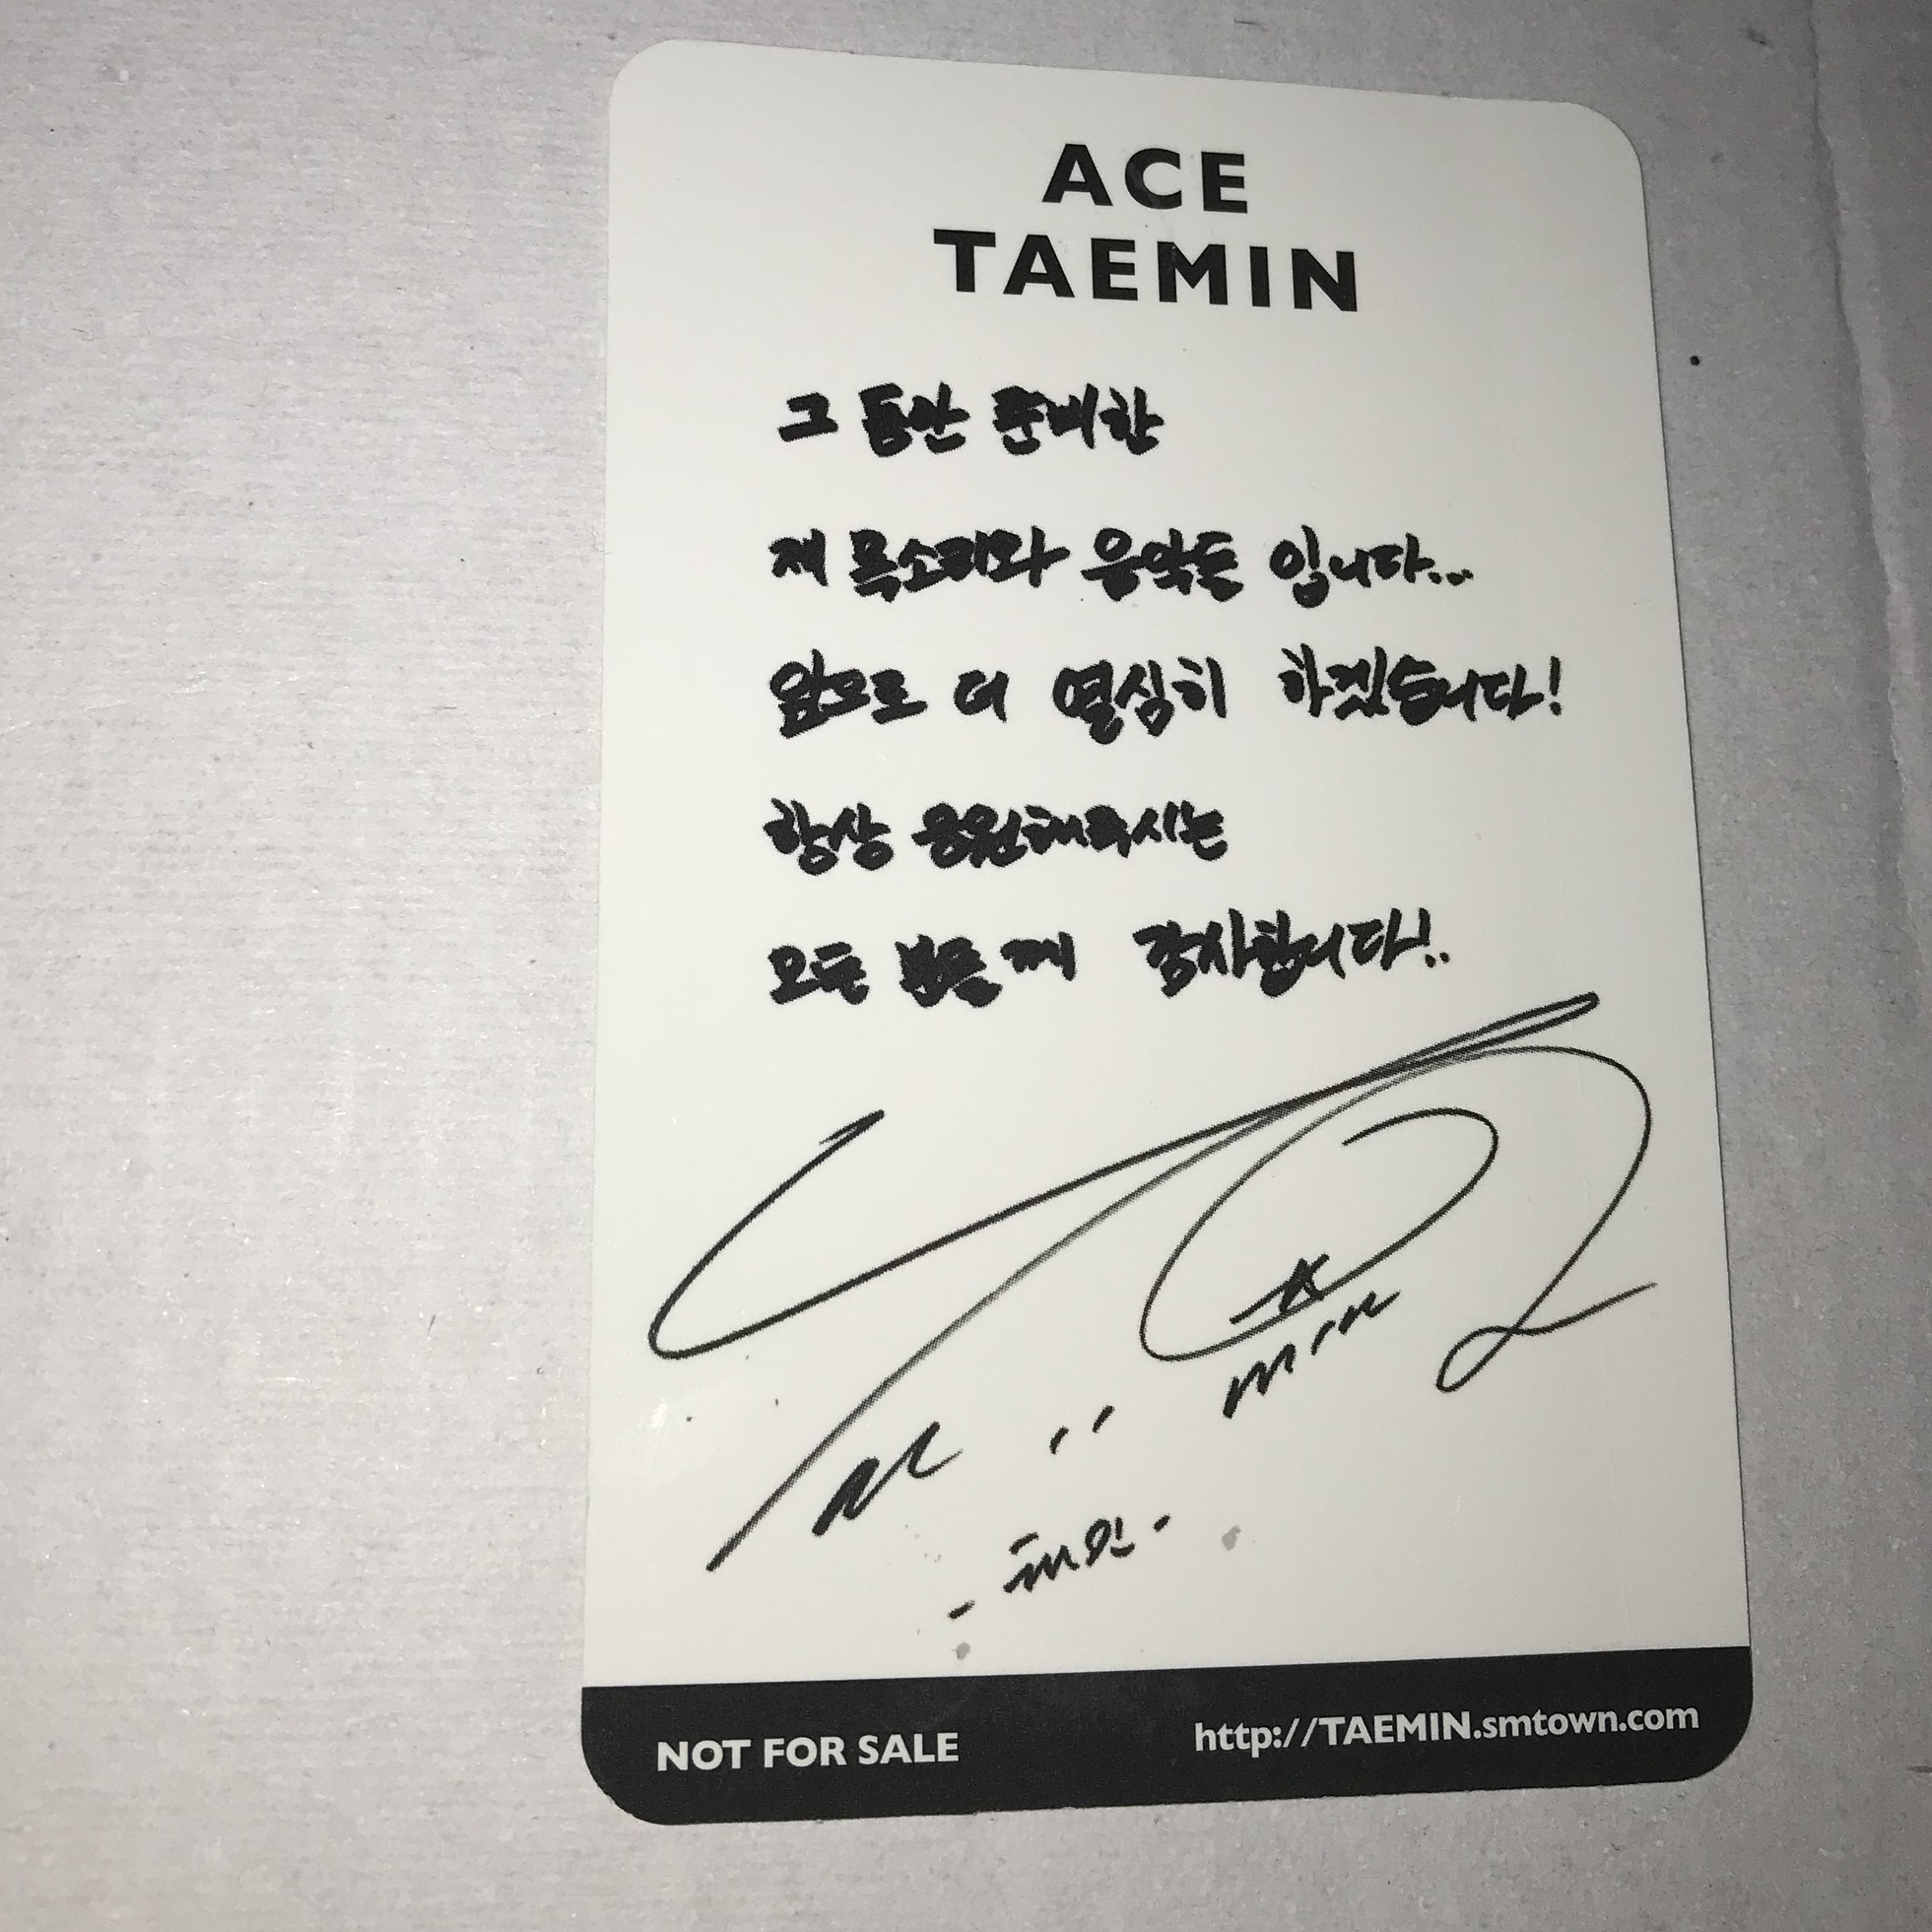 private listing! @karlyhegarty taemin ace pc + £1 50    - Depop